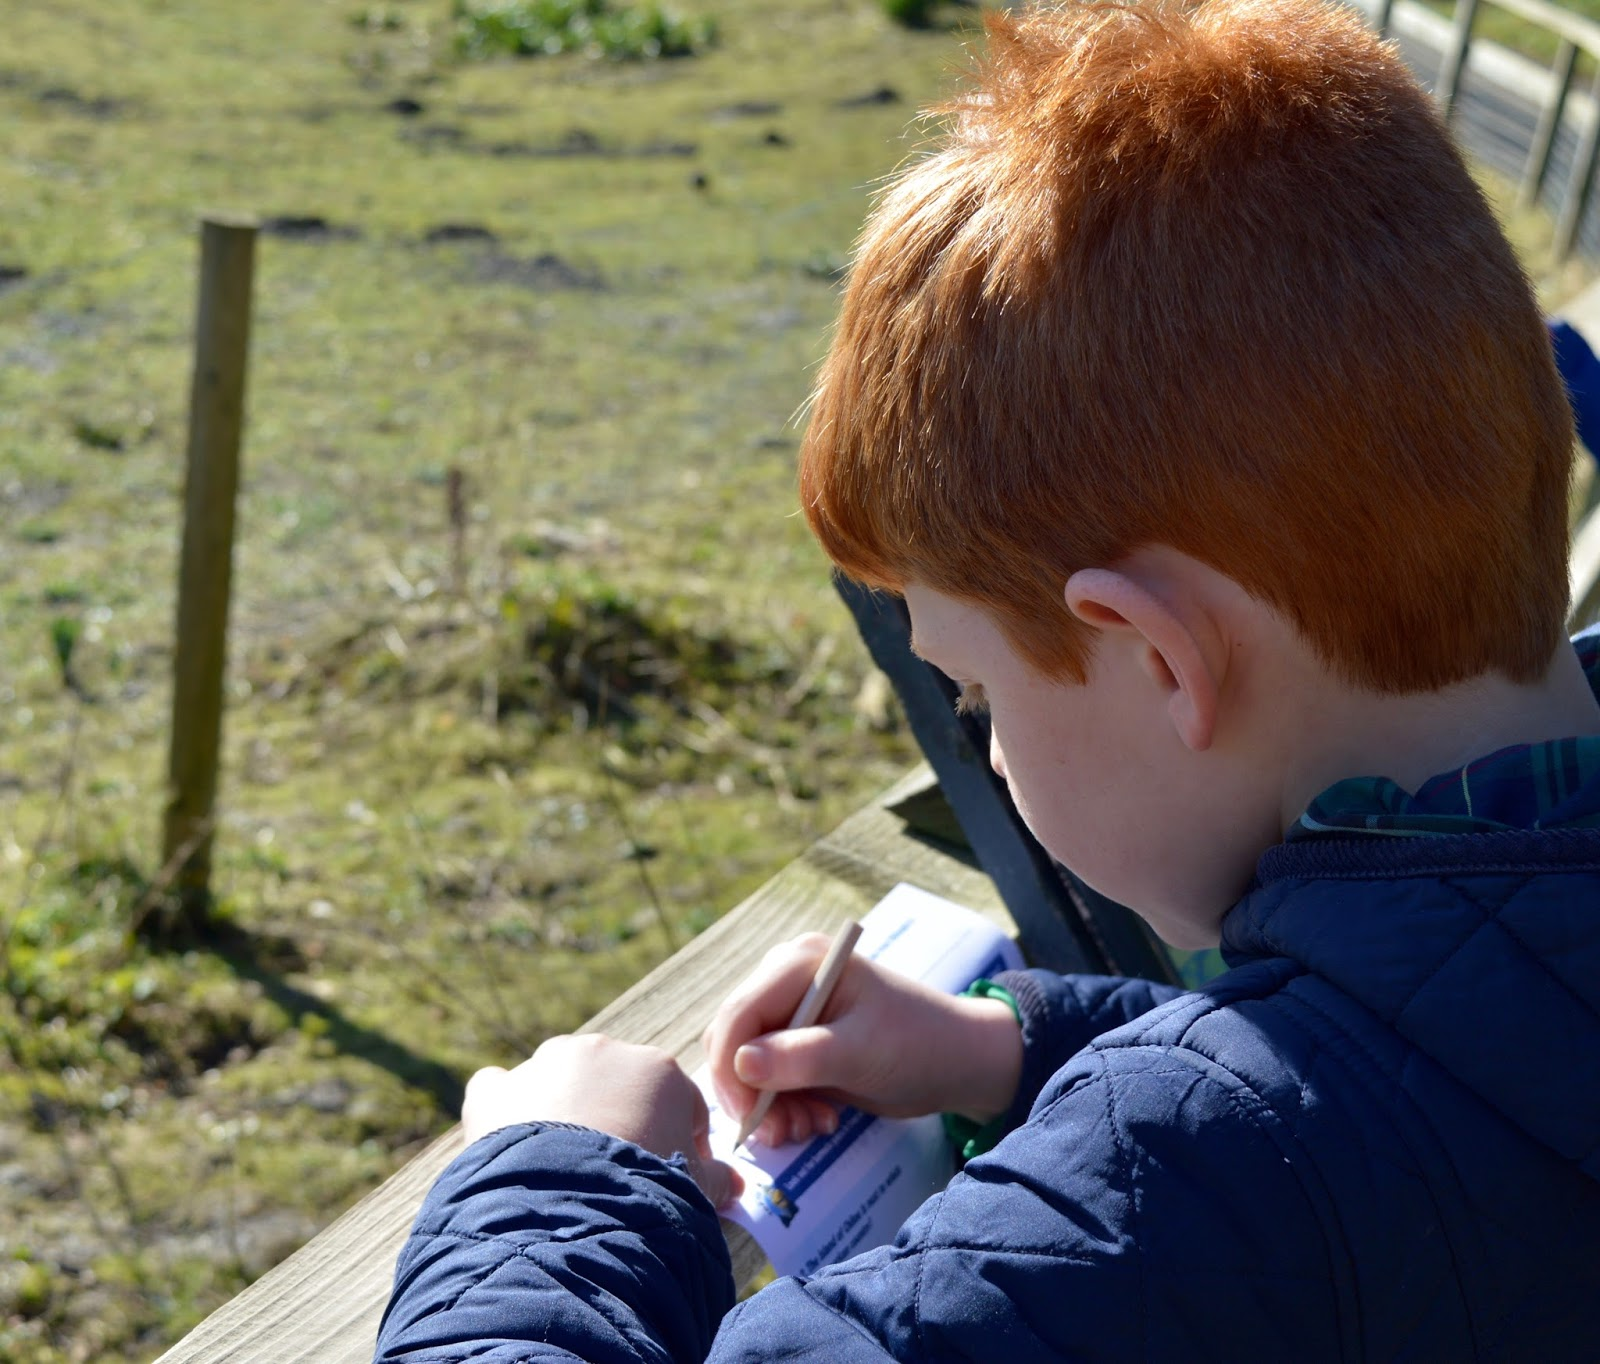 WWT Washington Wetland Centre | An Accessible North East Day Out for the Whole Family - free trail